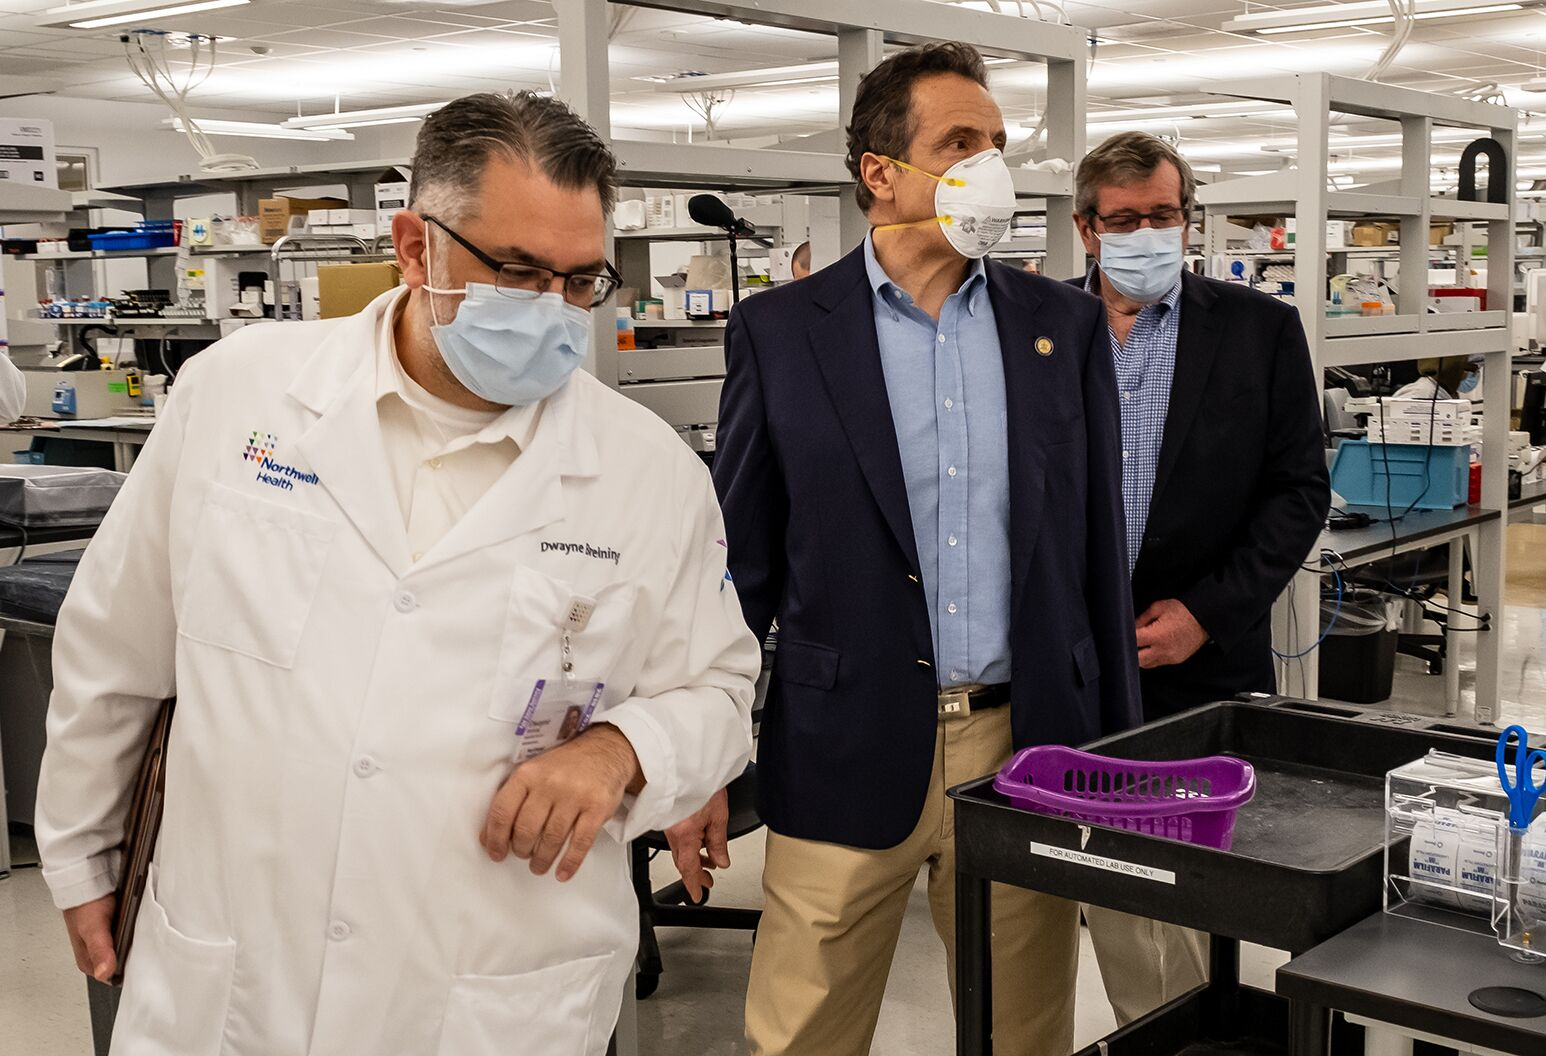 Governor Cuomo Announces New York State Establishes Two Church Testing Sites In Houston Covid 19 Hot Spots Northwell Health